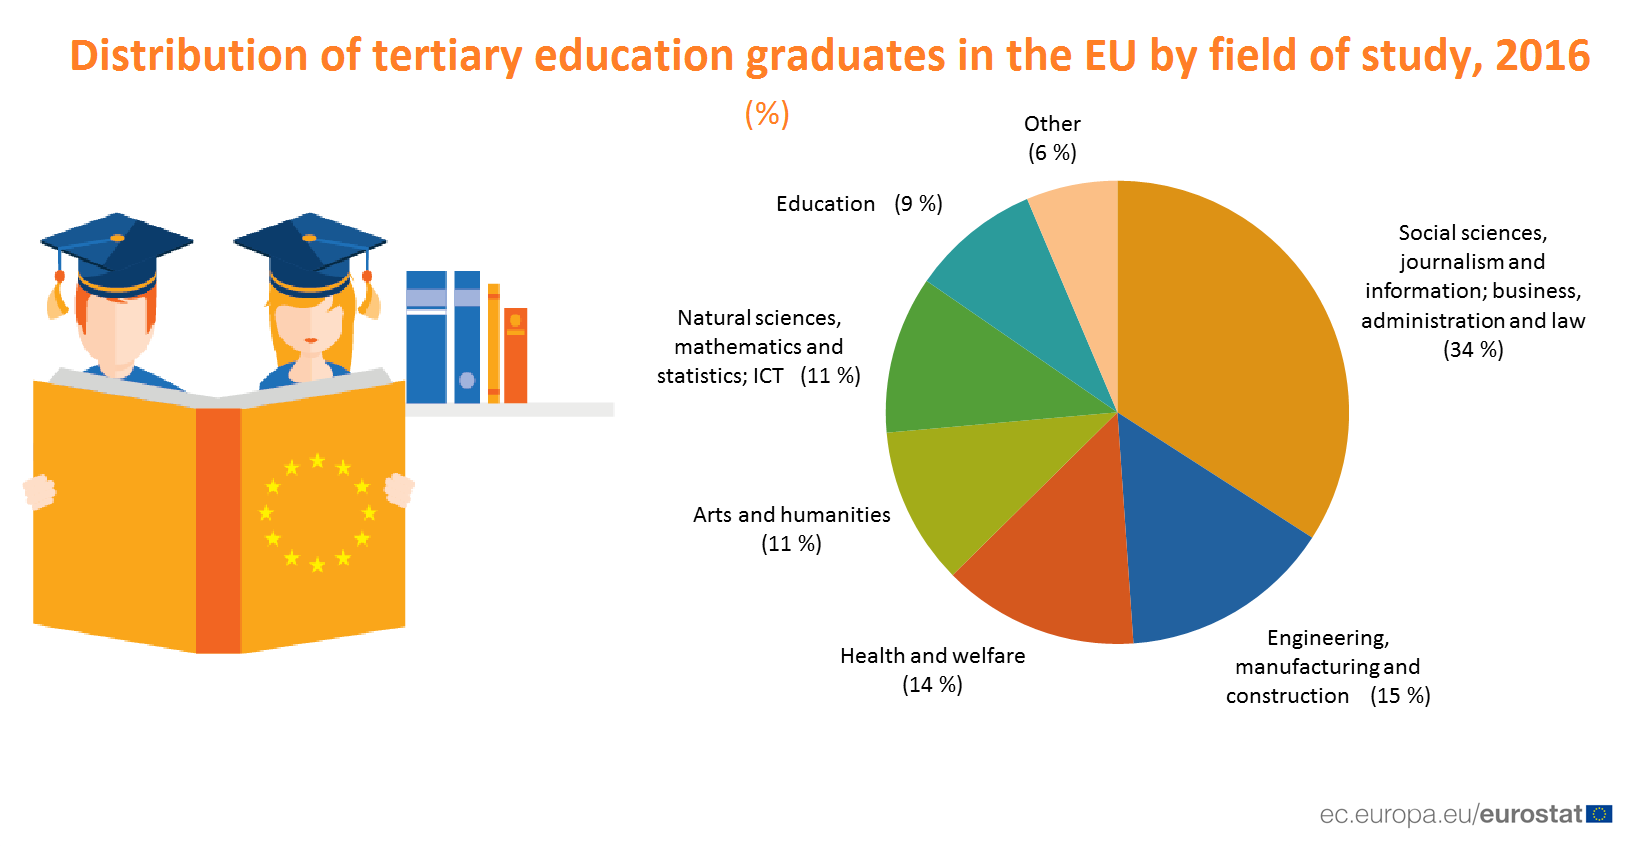 Pie chart of tertiary subject groups in the EU 2016